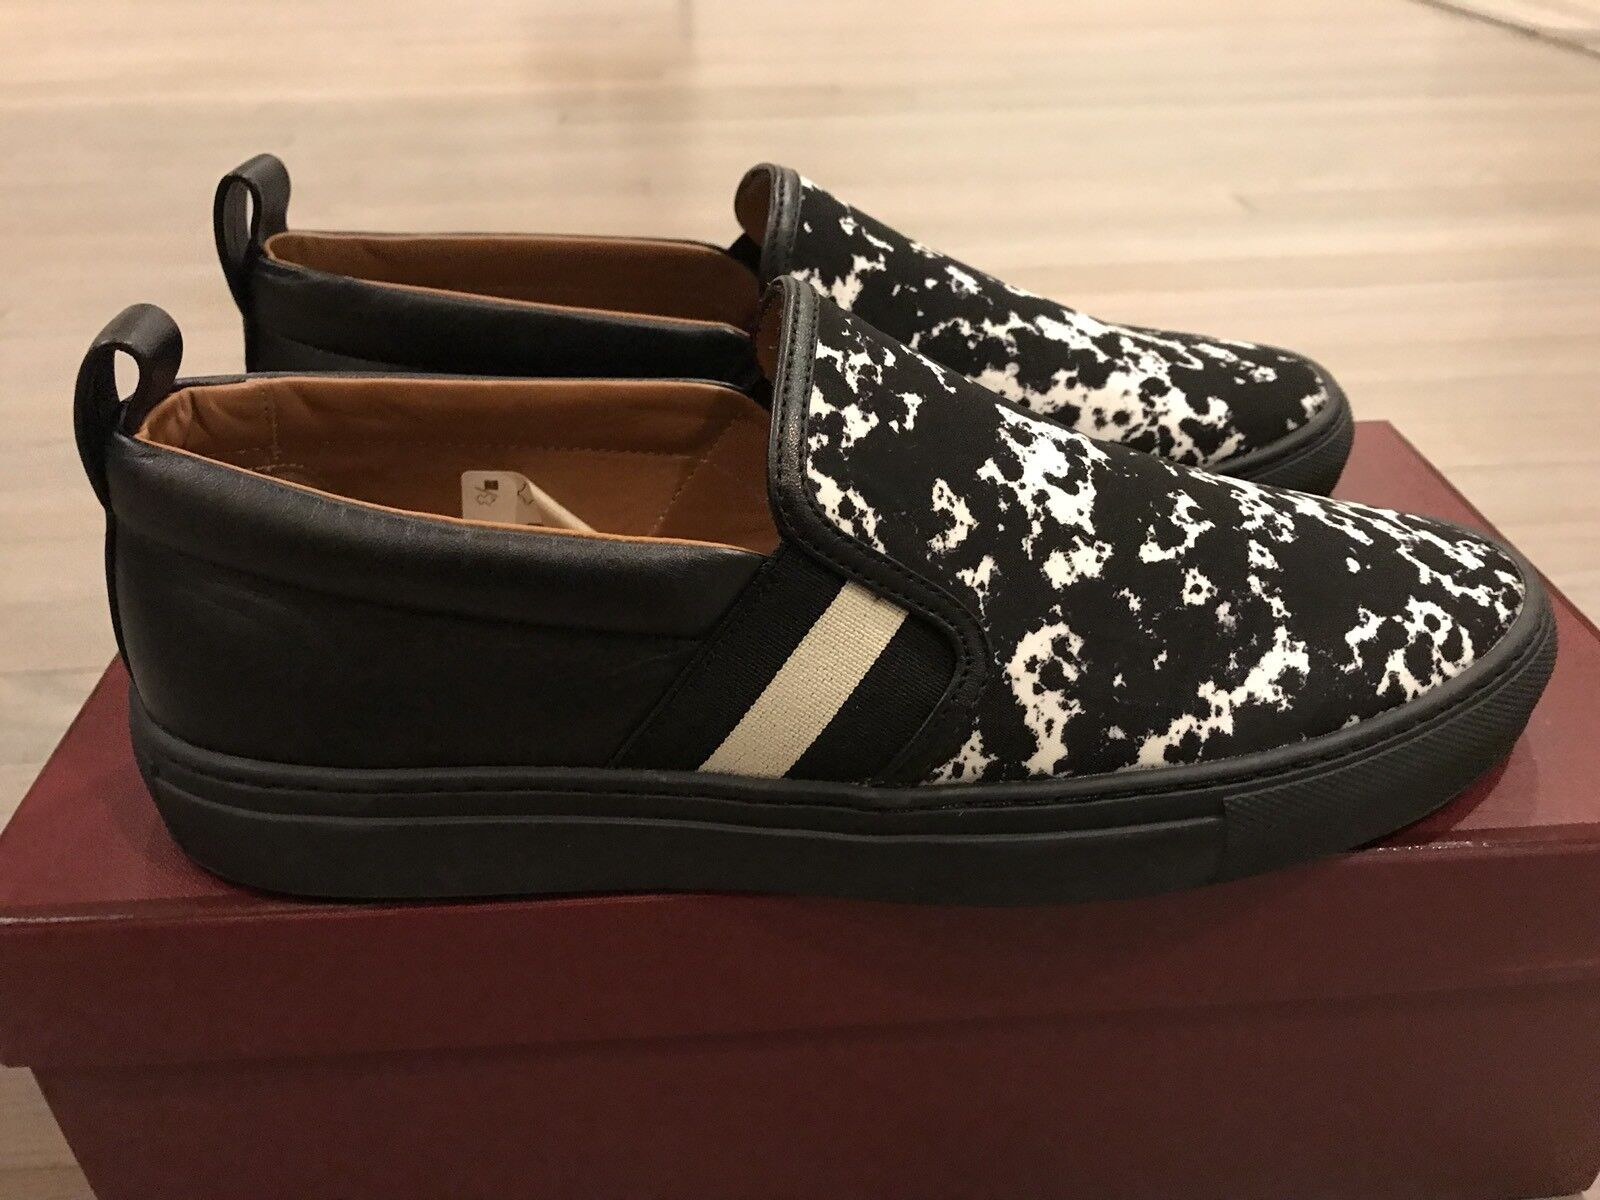 550 and Nylon Bally Herald T 00 Pelle and Nylon and Slip on scarpe size US 10   ae10bf